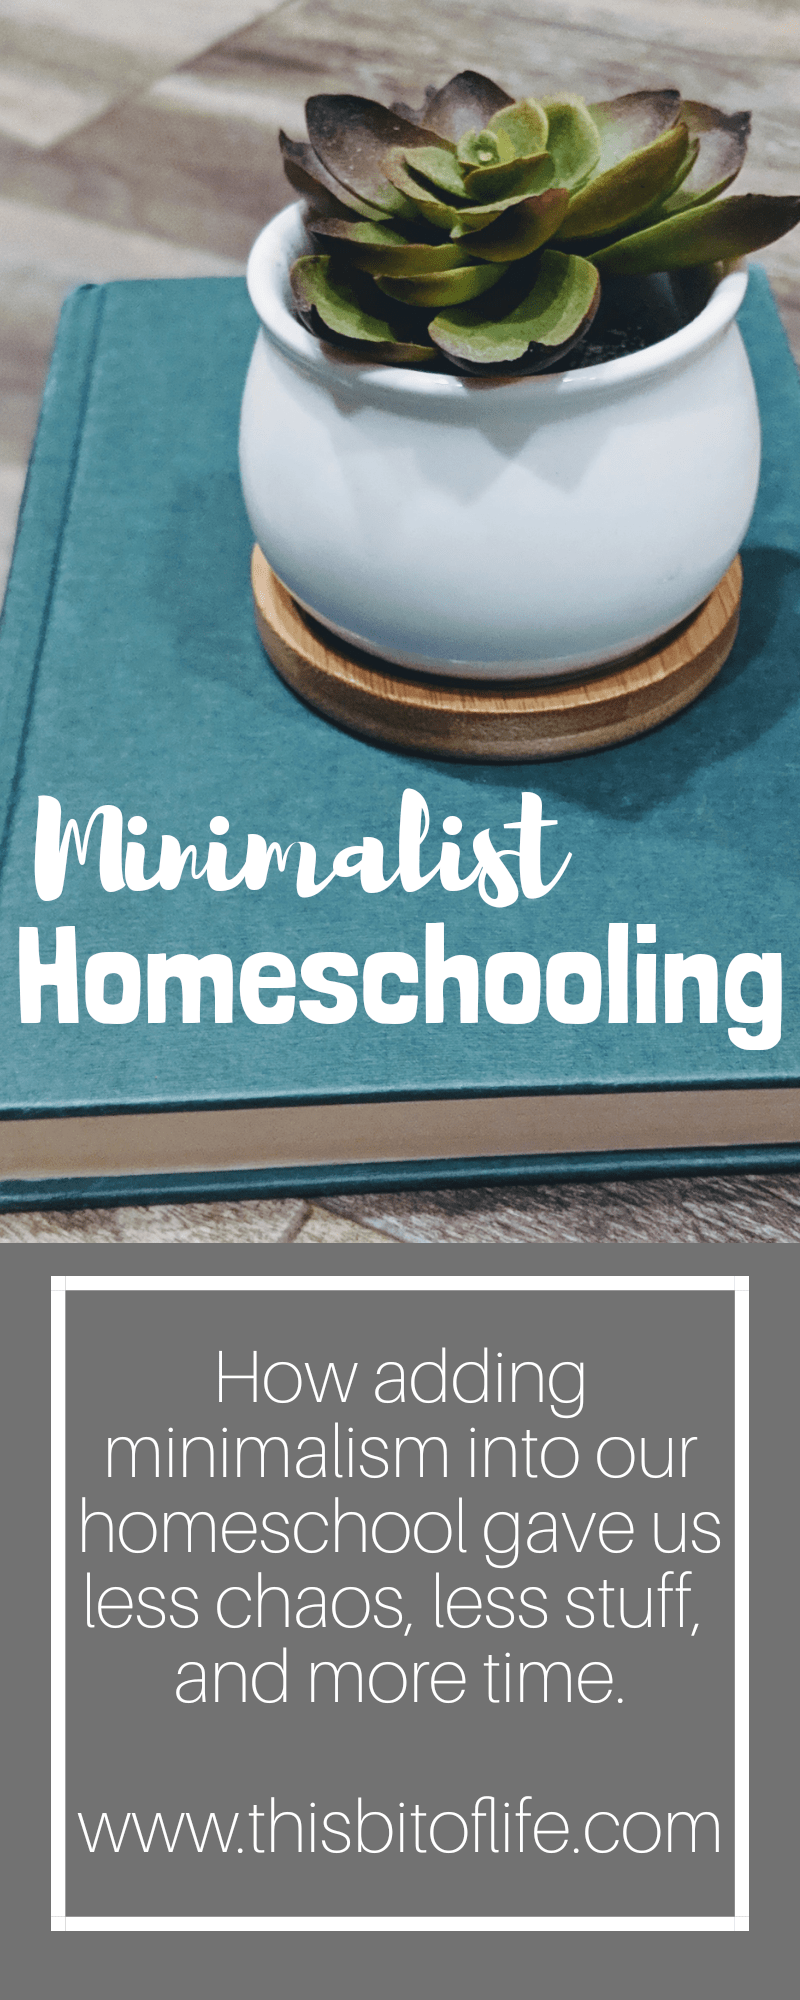 Minimalist Homeschool. How adding minimalism to our homeschool gave us less chaos, less stuff, and more time.